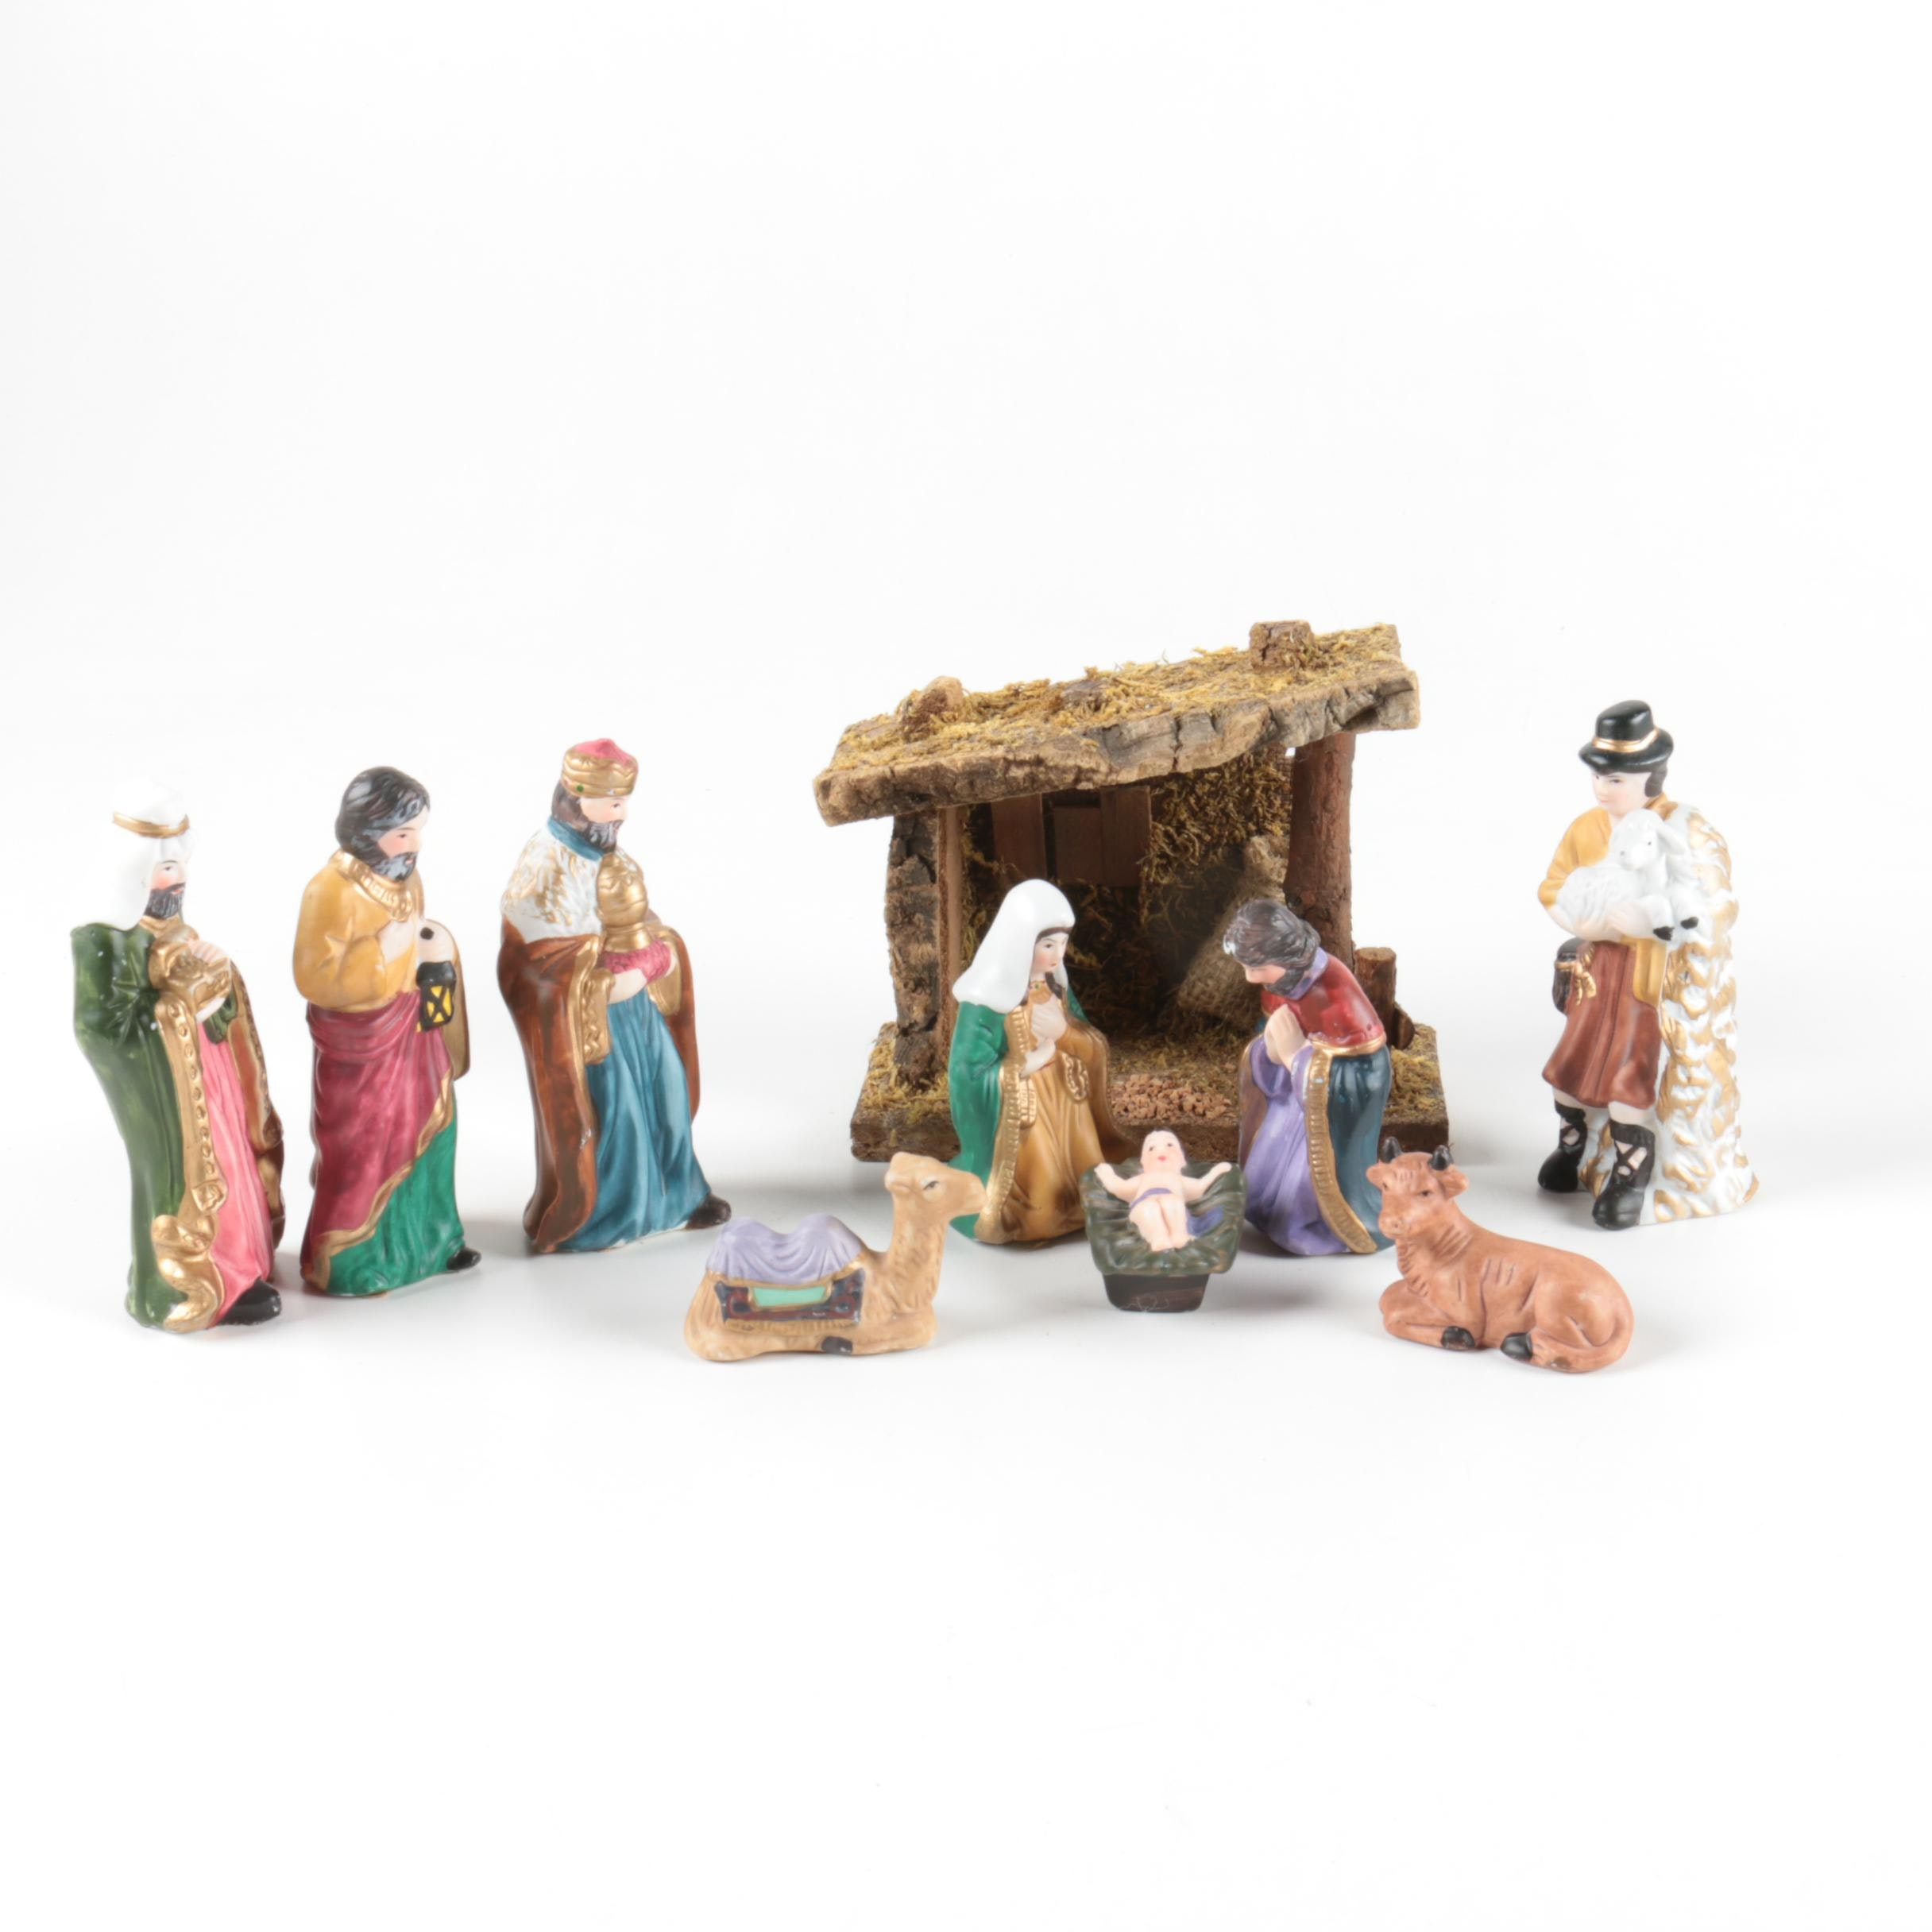 Hand-Painted Ceramic Nativity Scene